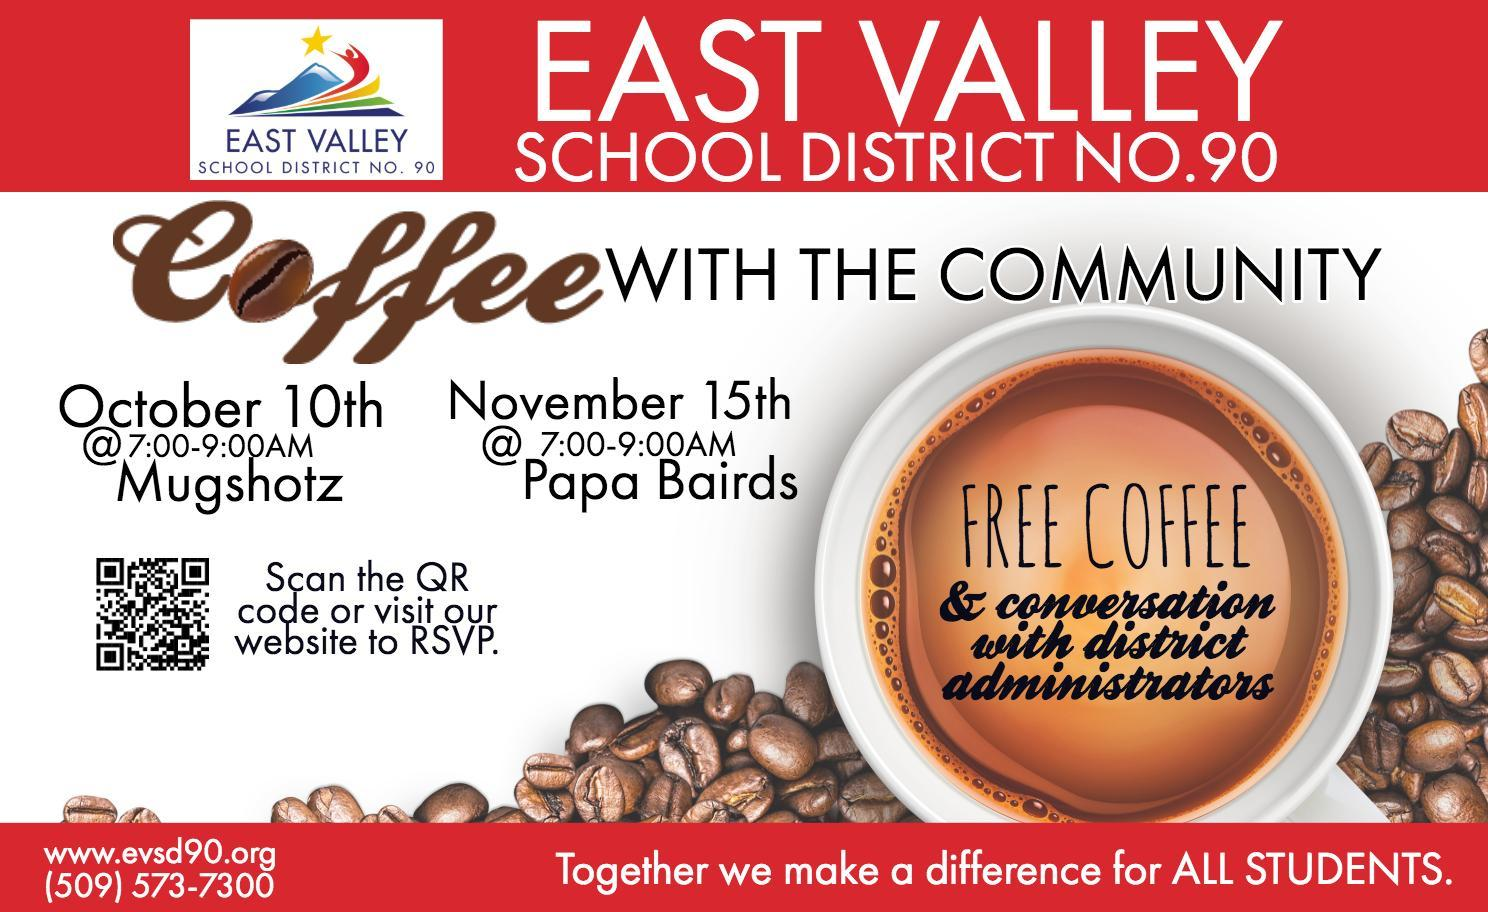 Join us for Coffee with the Community on October 10th and November 15th for free coffee and casual conversations with our administrators. Call 509-573-7311 for more information.